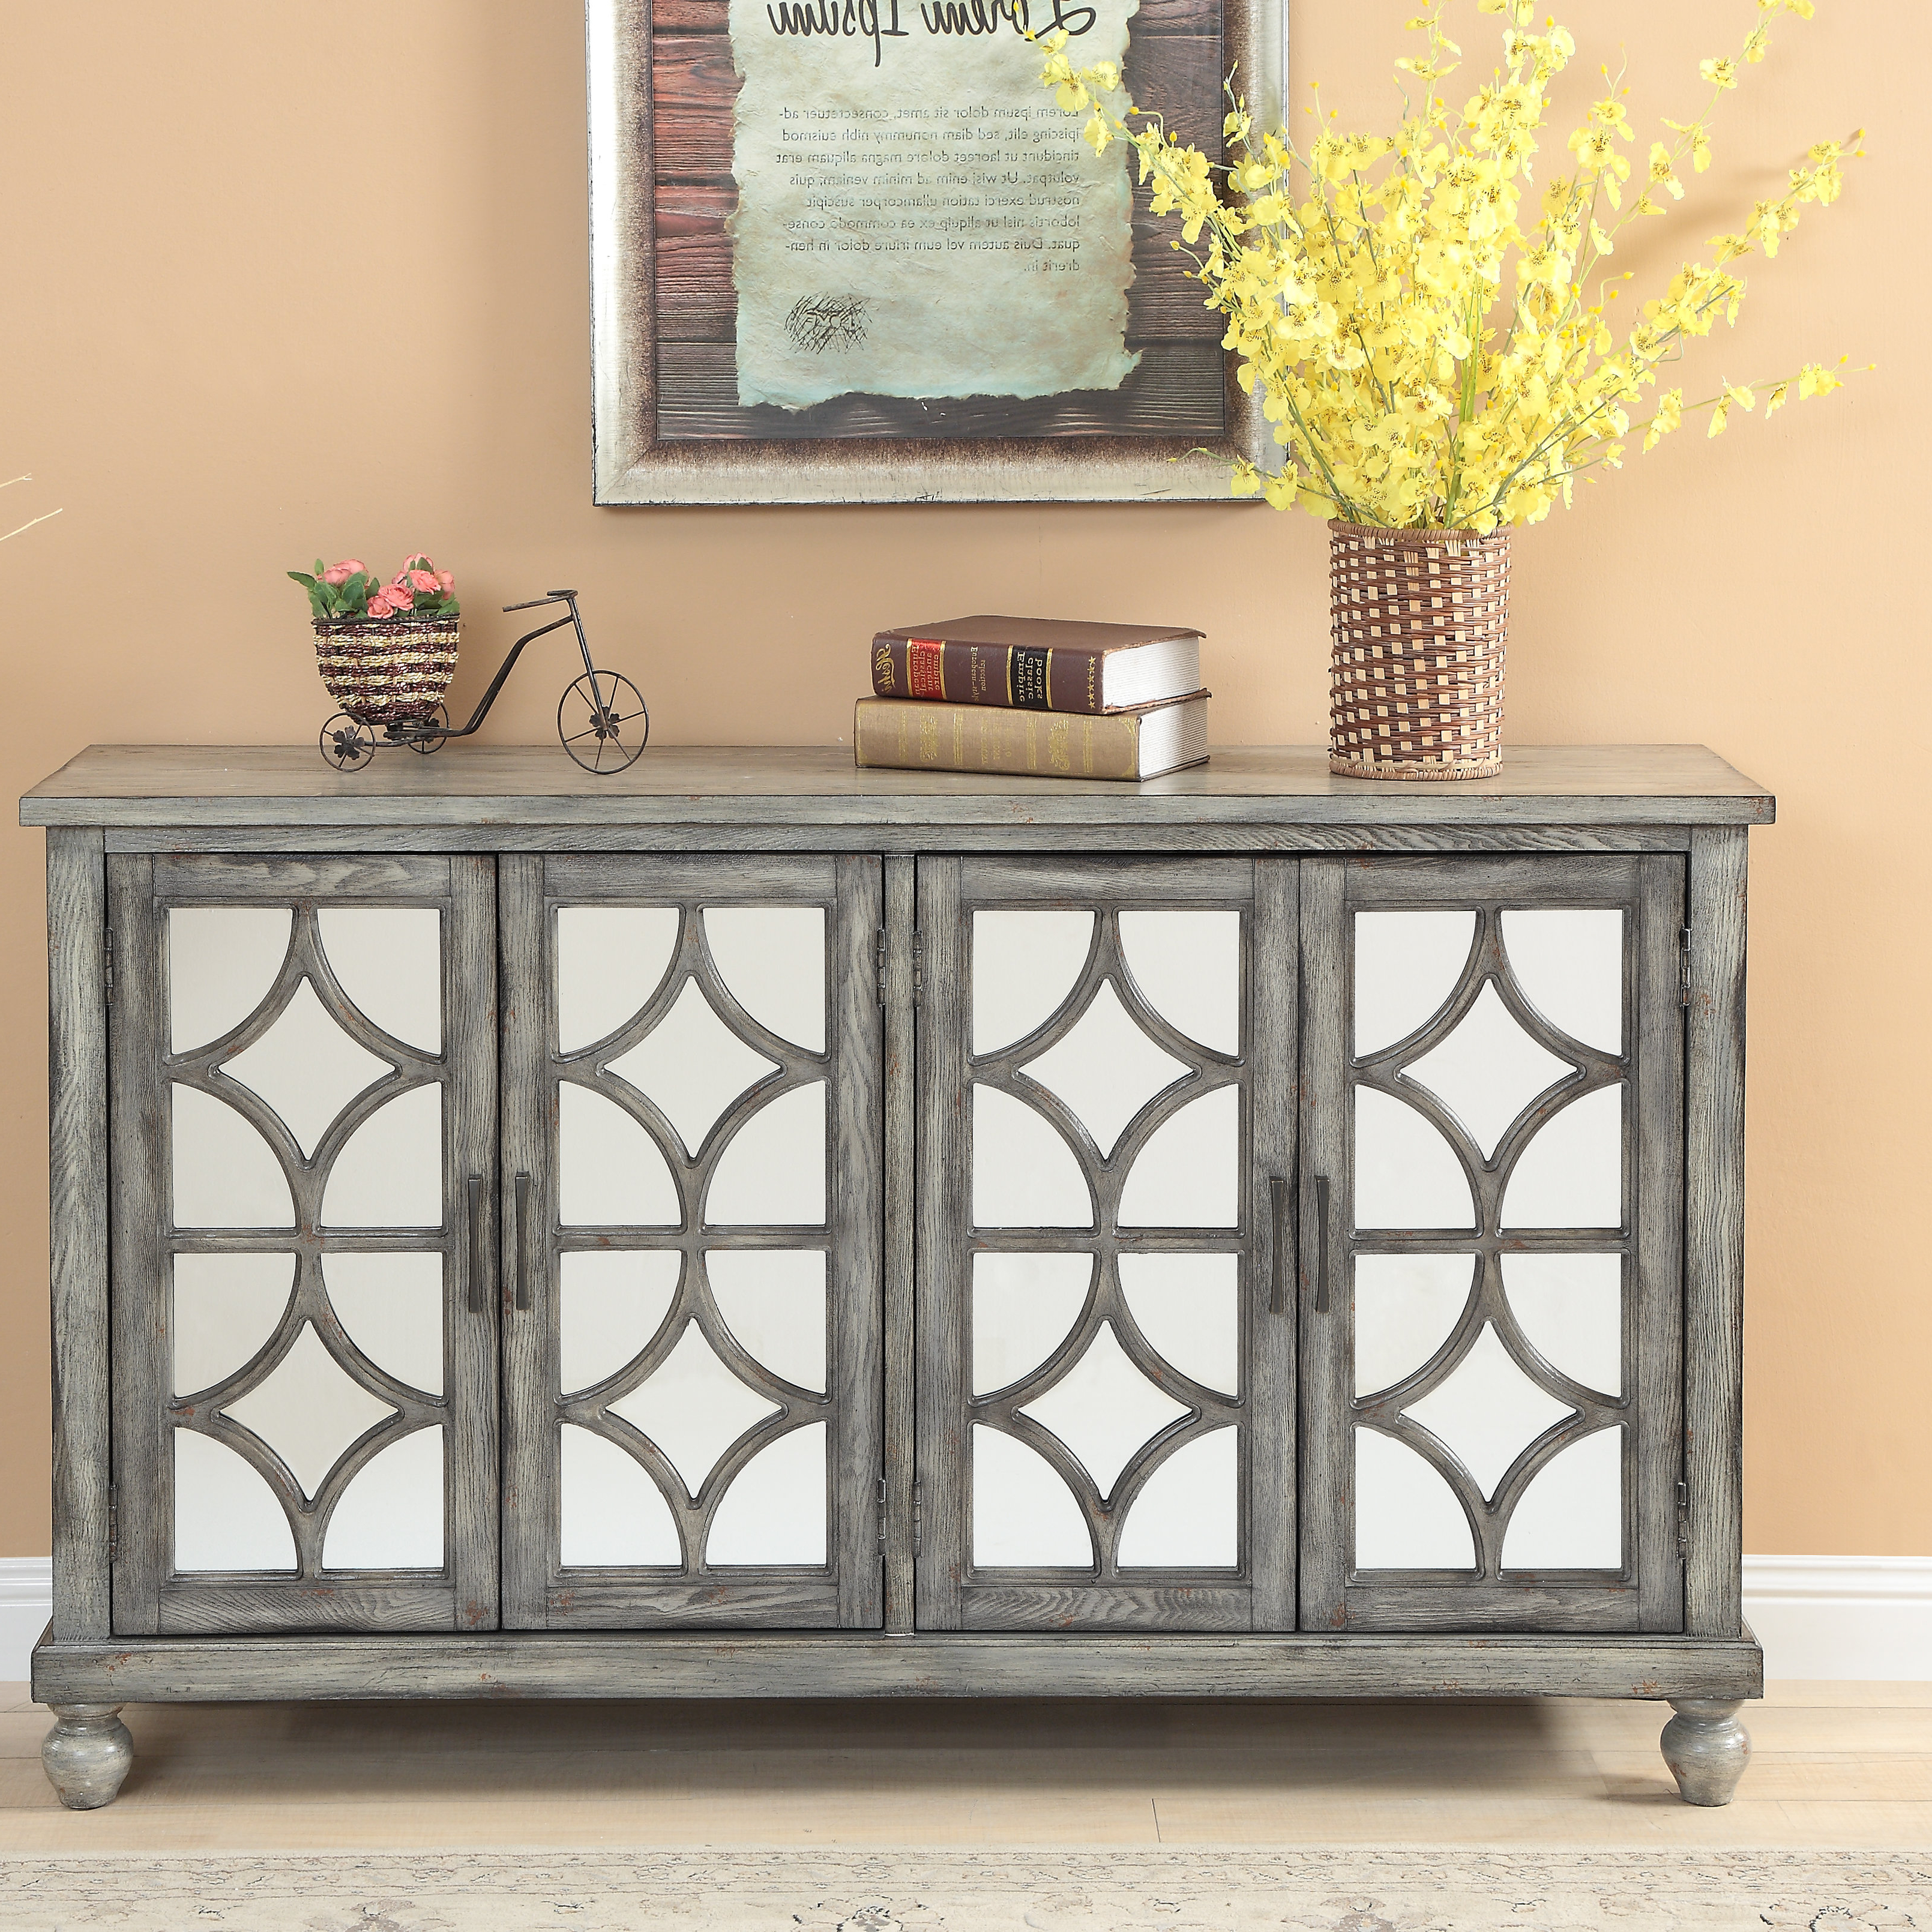 Extra Large Credenza | Wayfair For Barr Credenzas (Gallery 8 of 20)